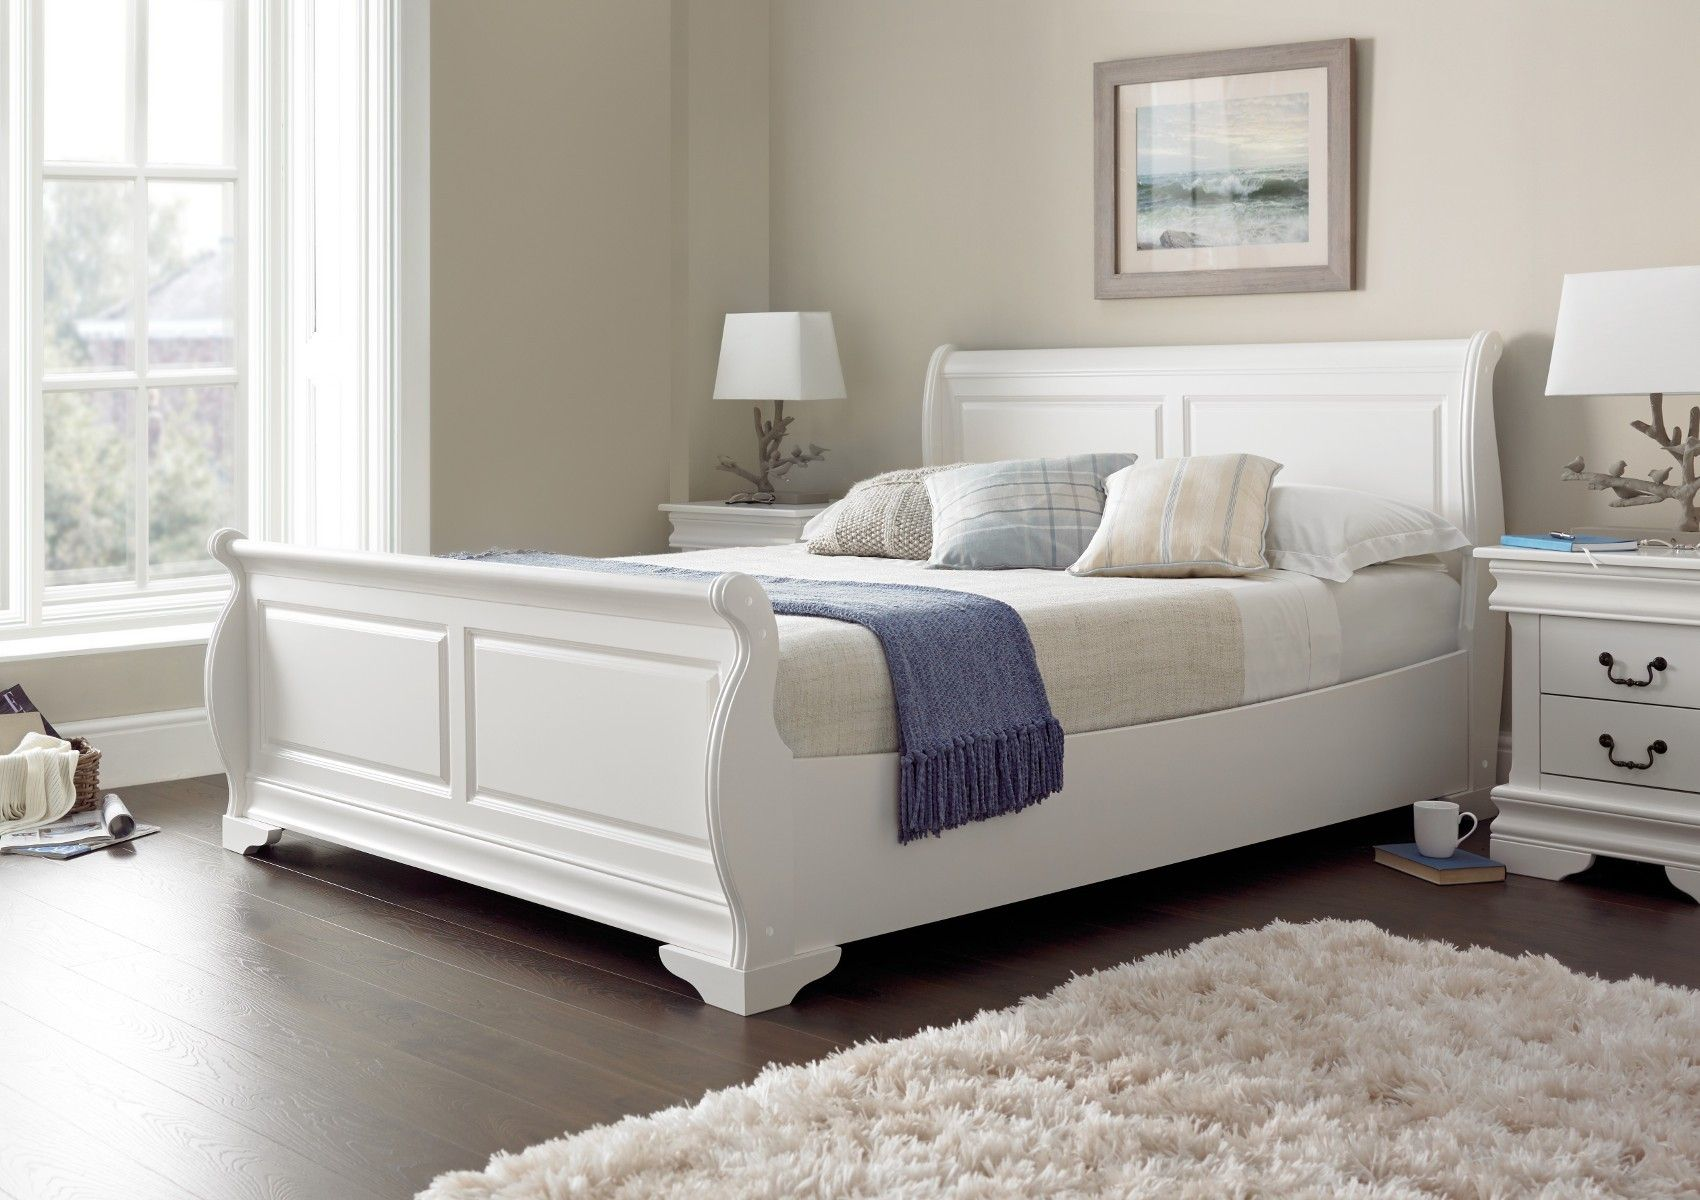 louie polar white new painted wood wooden beds. Black Bedroom Furniture Sets. Home Design Ideas